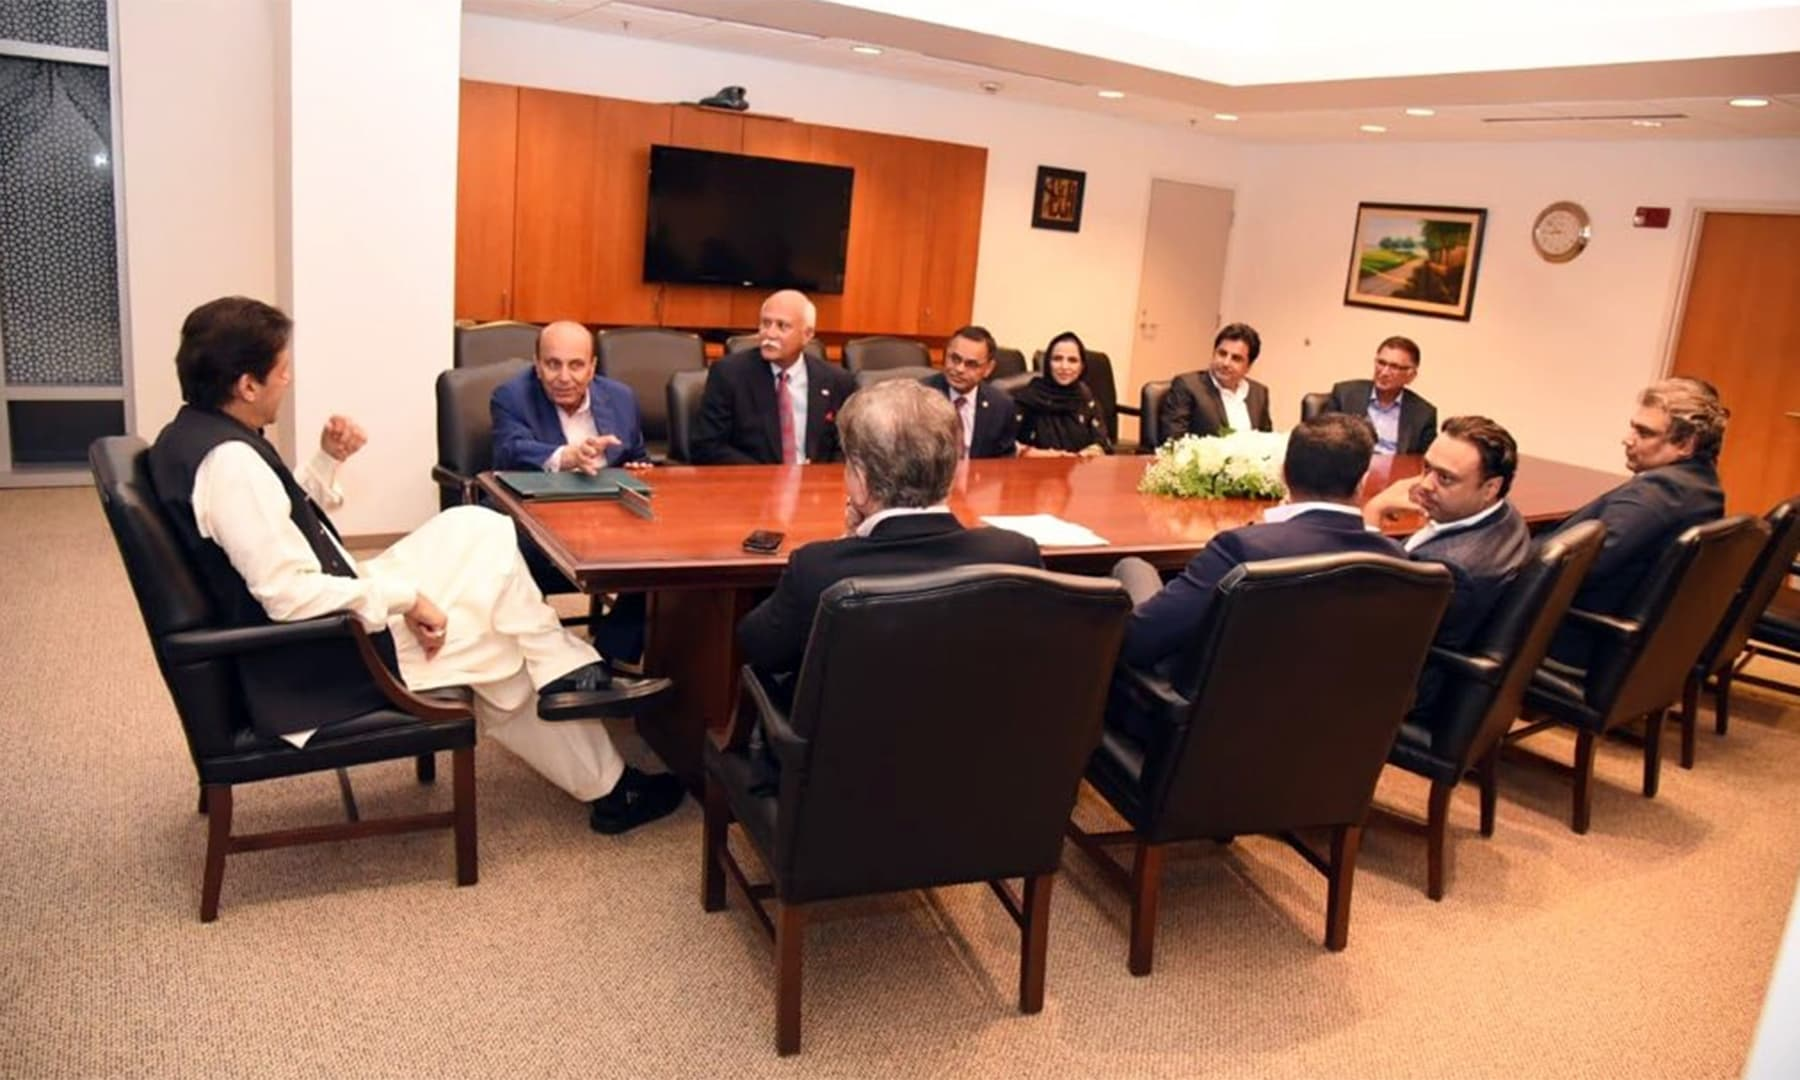 PM Imran meeting with investors and urging them to avail opportunities in Pakistan. — PTI Official